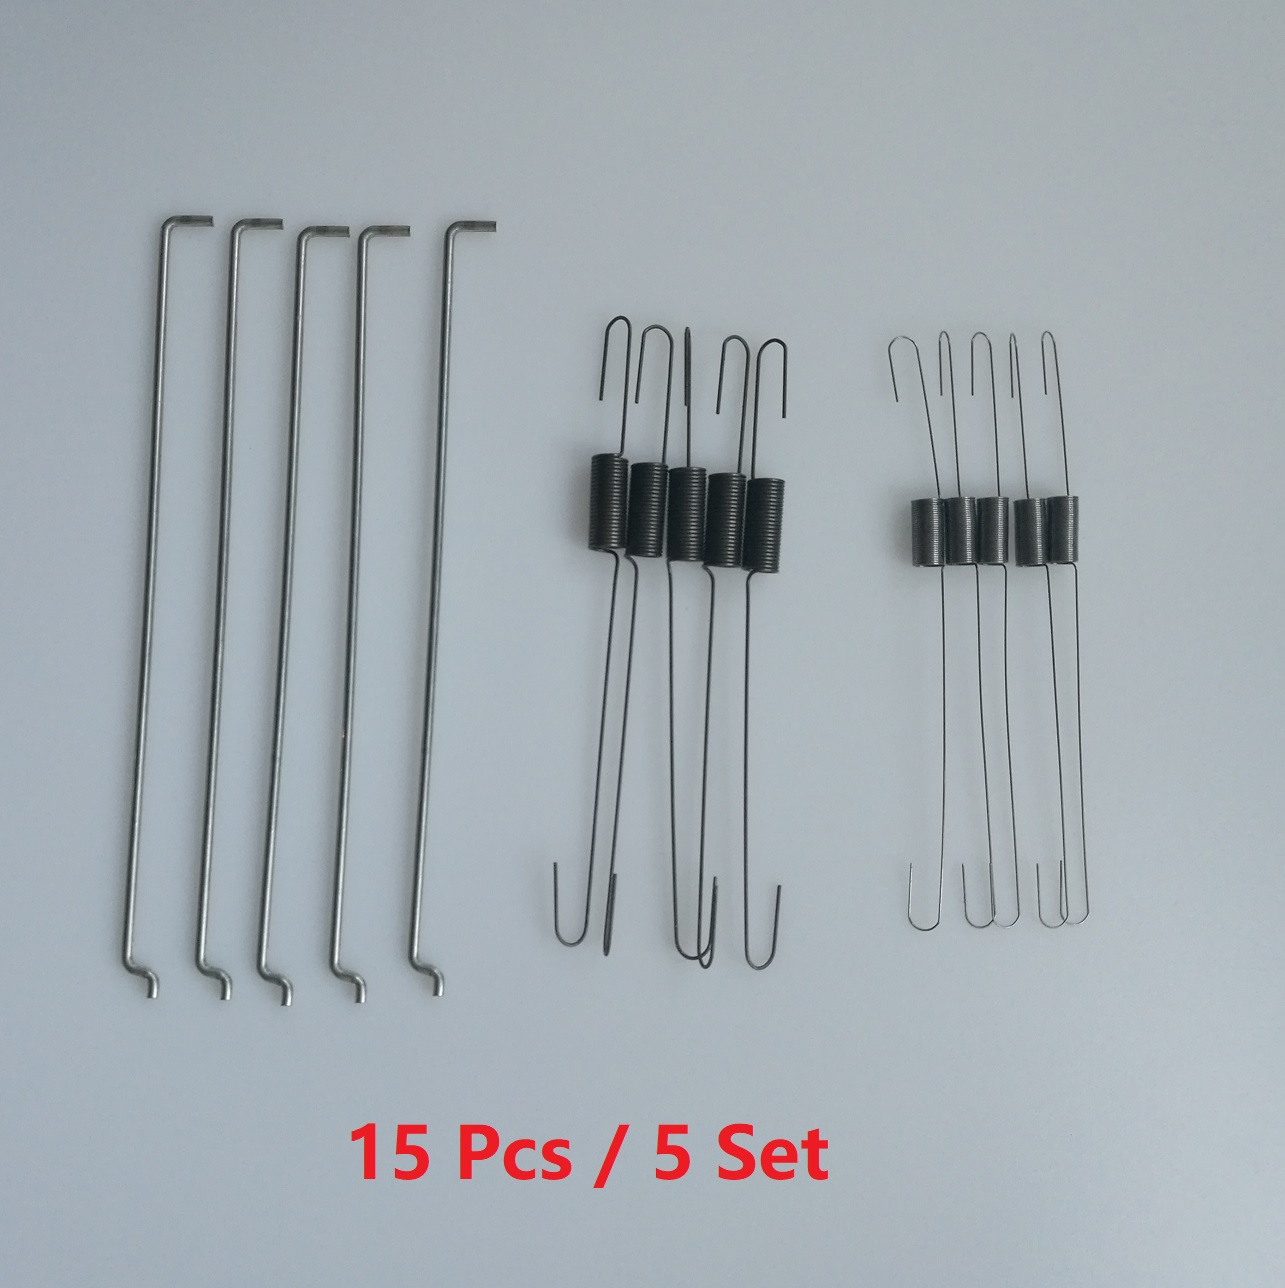 15pcs/5set 6pcs Metal Throttle Return Spring Governor Link Rod Set 16555-ZE1-000 16561-ZE1-020 Fit For Honda GX140 GX160 GX200